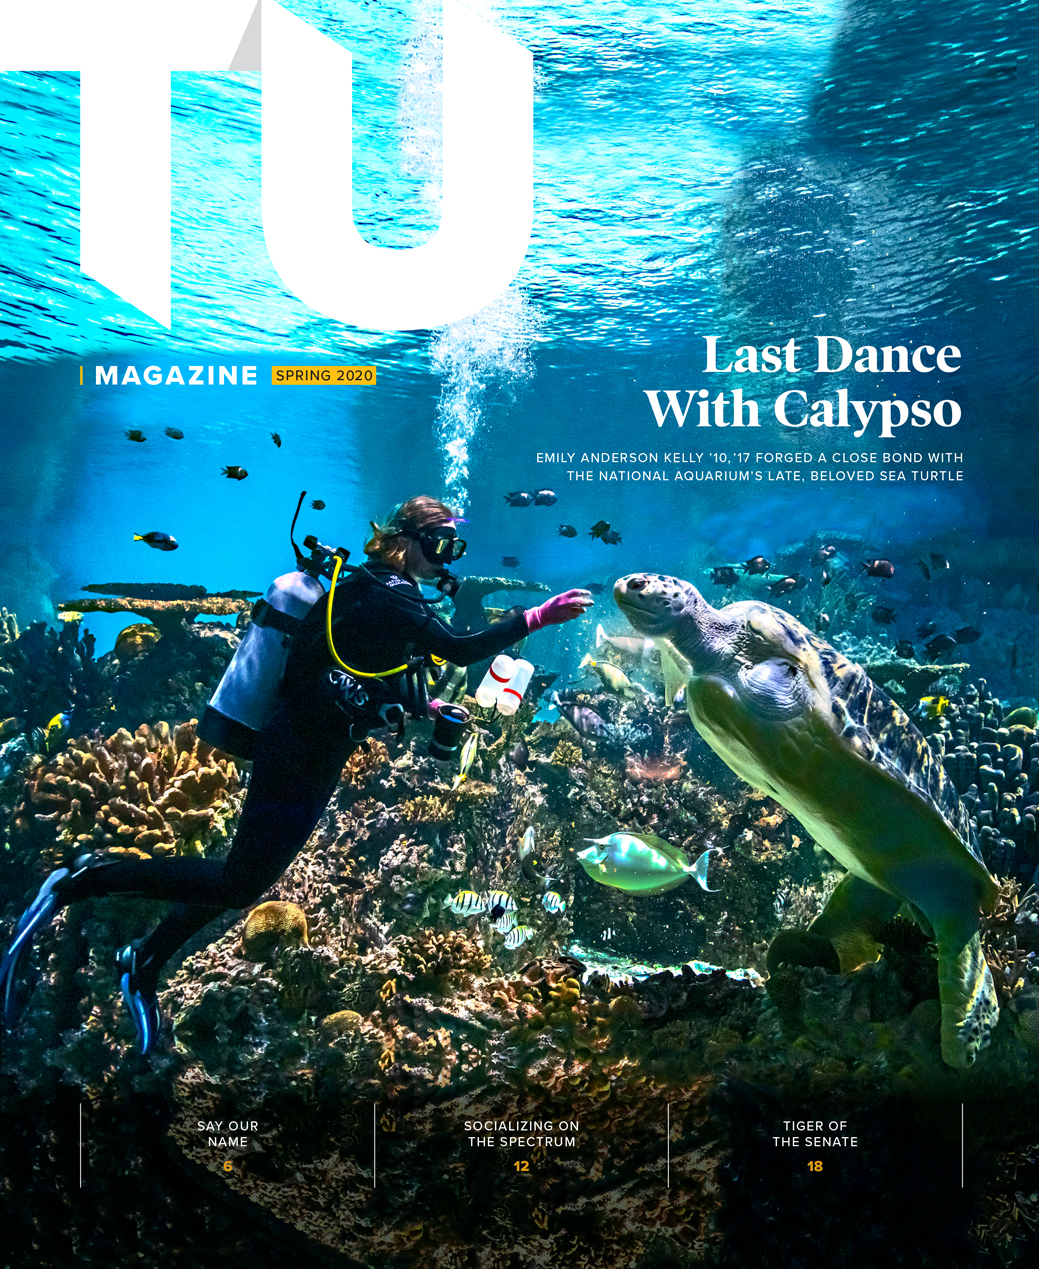 TU Magazine cover spring 2020. Last Dance with Calypso. Emily Anderson Kelly forged a close bond with the National Aquarium's late beloved sea turtle.